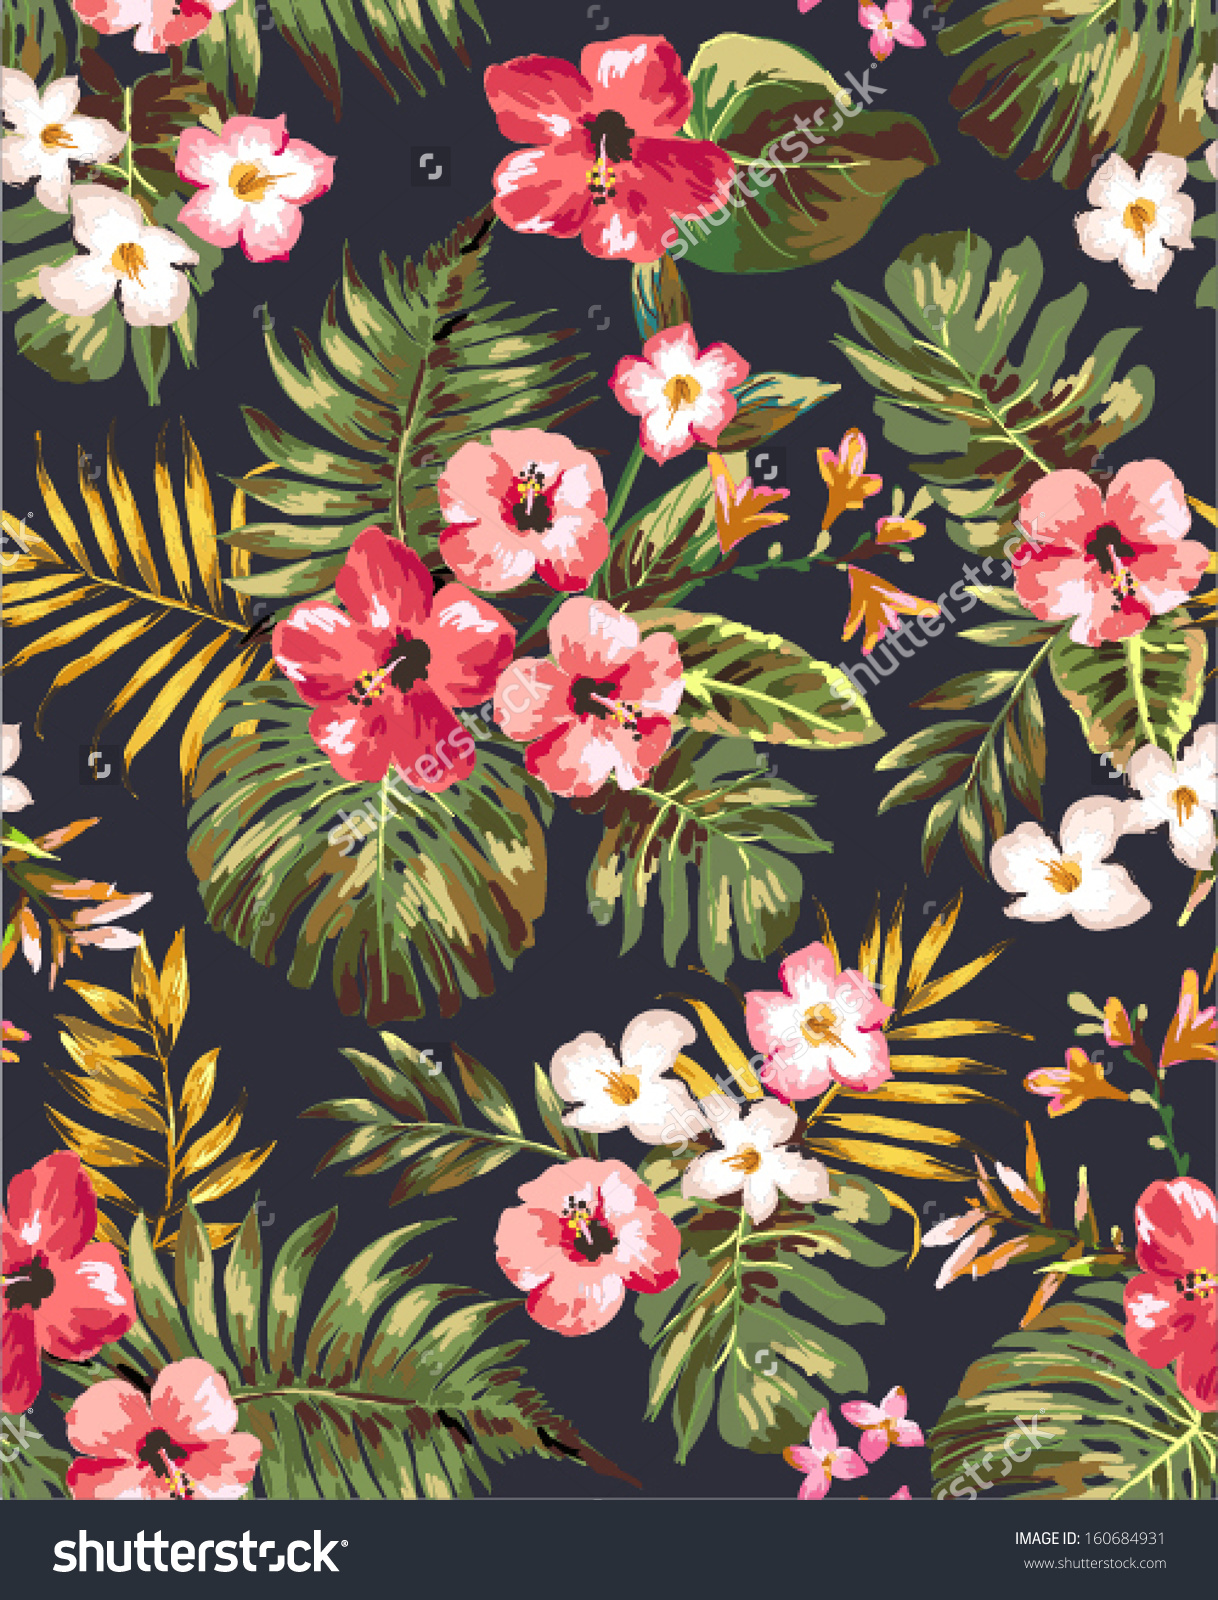 Tropical Floral Art Clipground